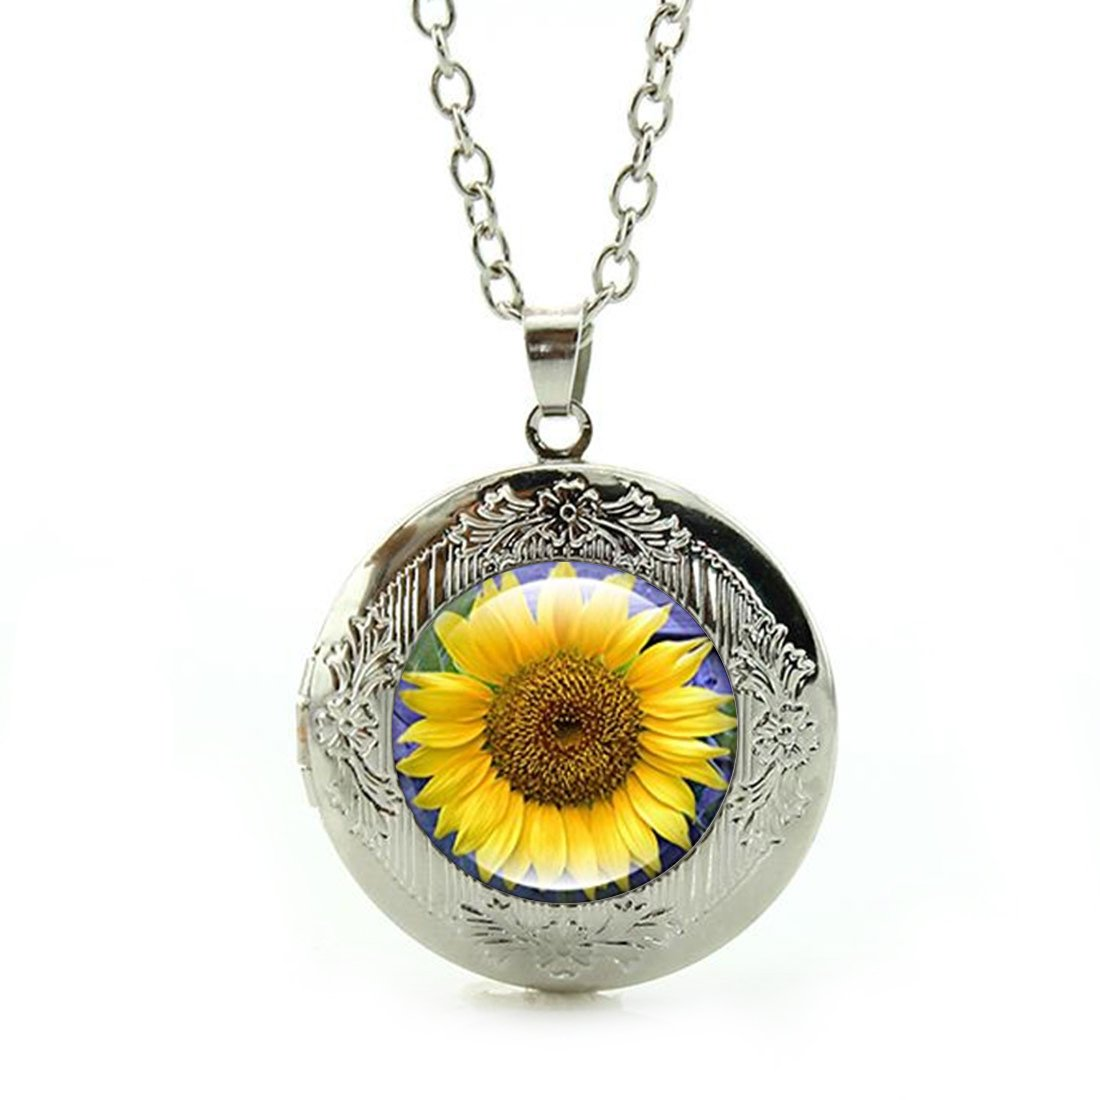 Custom Photo Glass Cabochon Pendant Necklace Sunflower Sterling Silver Plating Chain Circle Bead Choker Healing Amulet for Friends Gift by Anzona (Image #1)